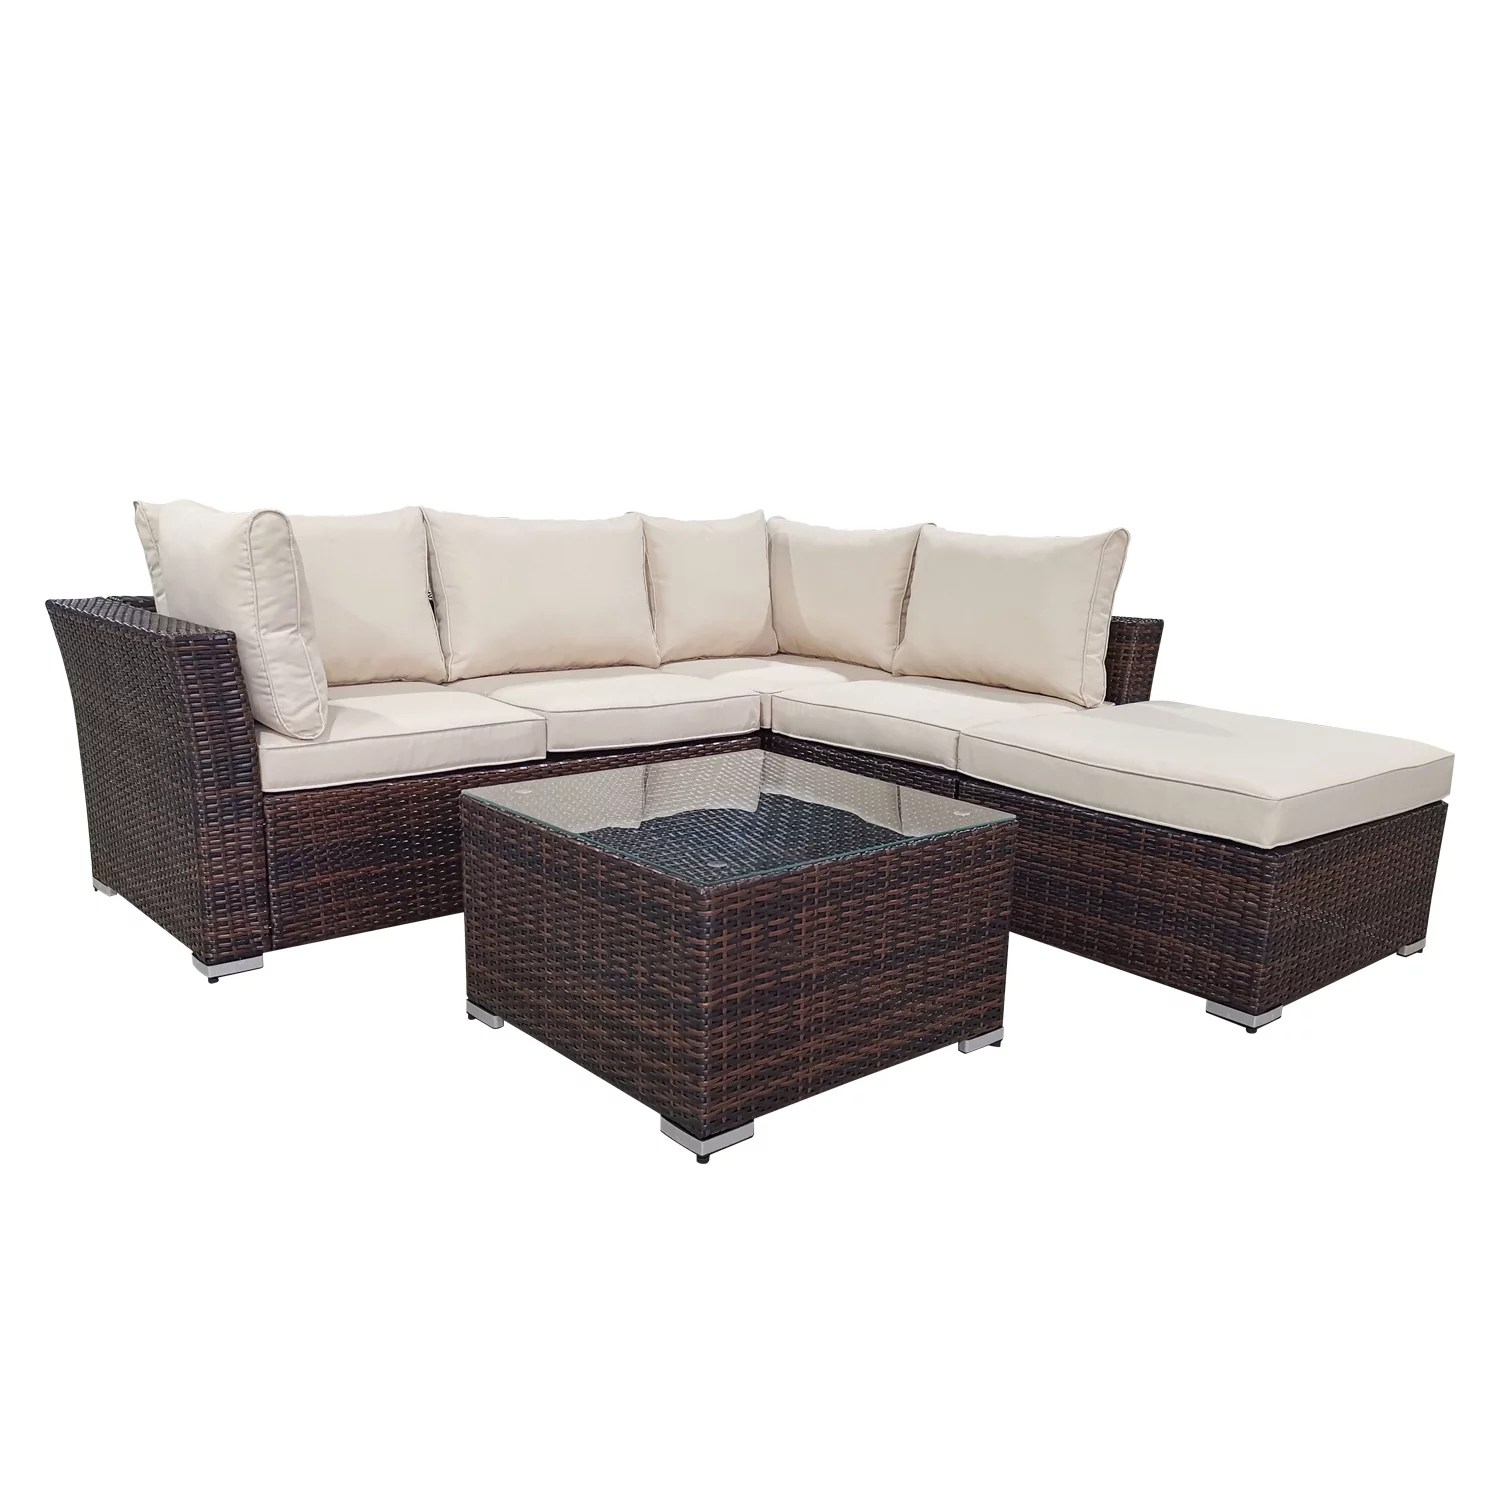 cloud mountain 4 piece patio conversation set outdoor furniture sectional sofa all weather wicker couch set with glass coffee table brown wicker for